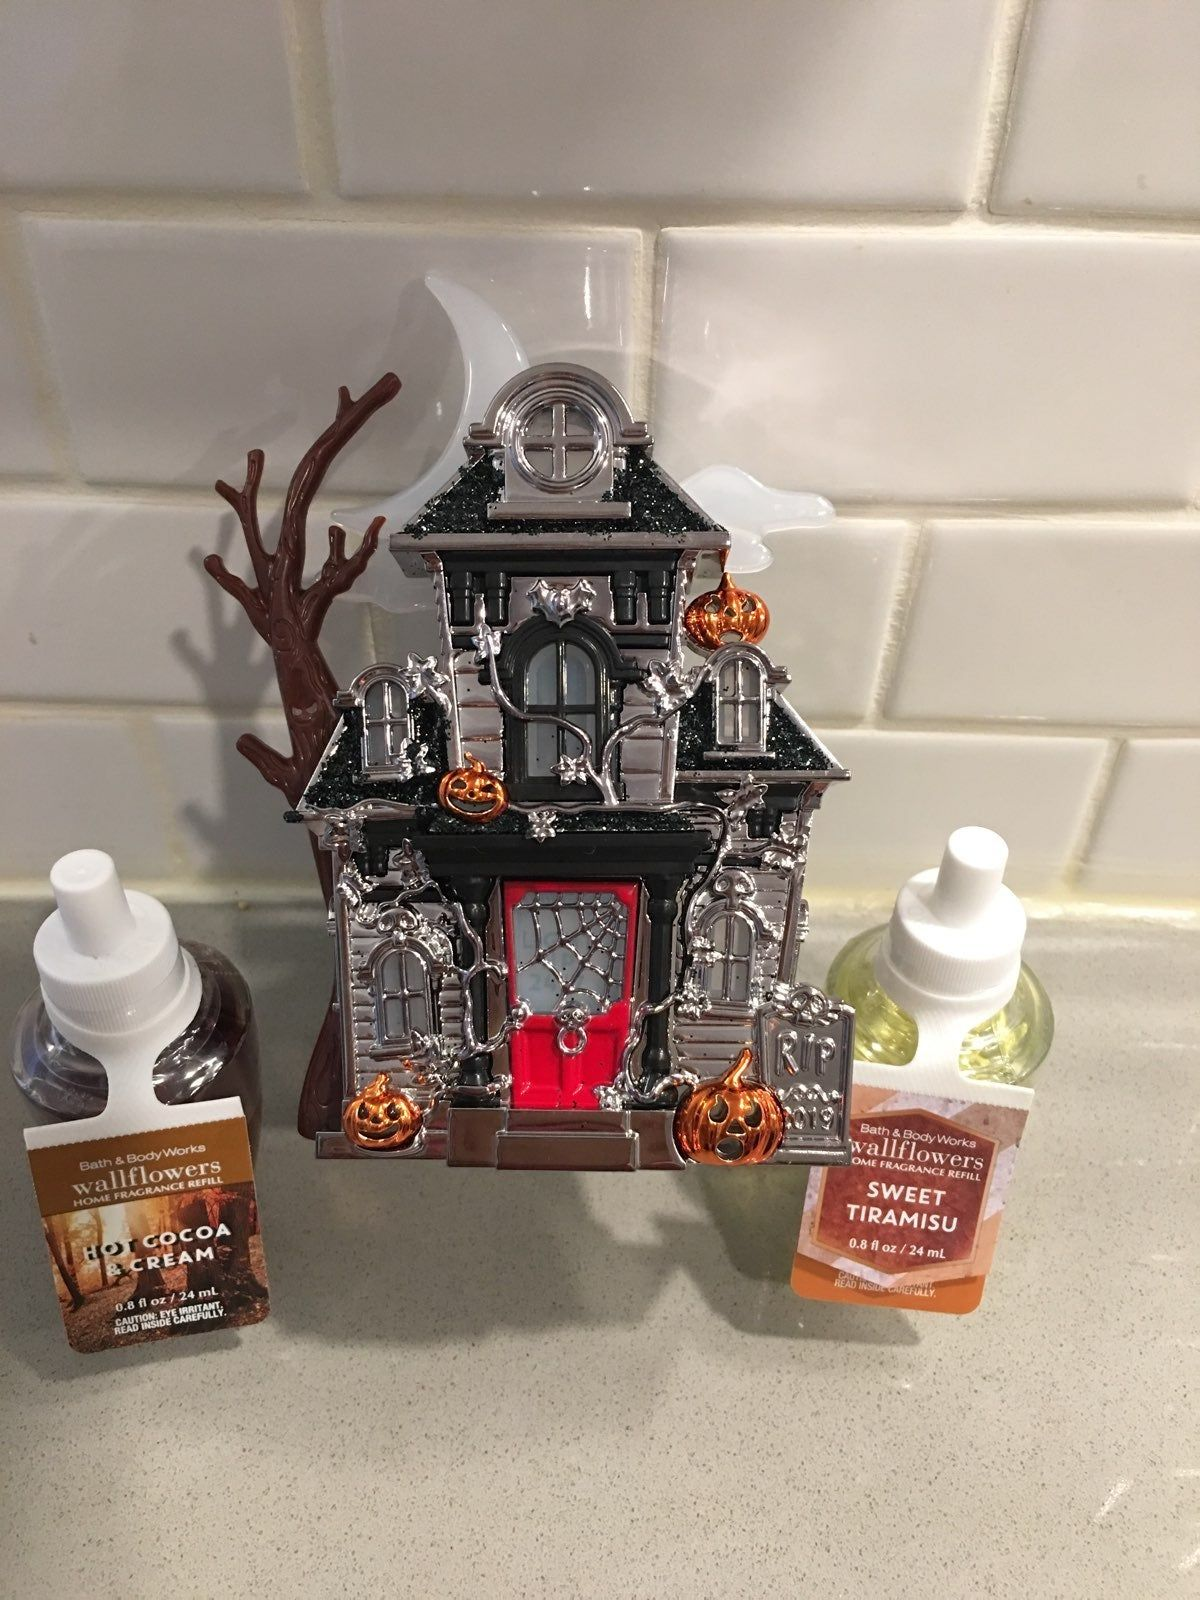 Bath And Body Works Haunted House Wallflower Nightlight With Refills See Photos Of It Lit Up Halloween Candles Holders Bath And Body Works Candle Collection